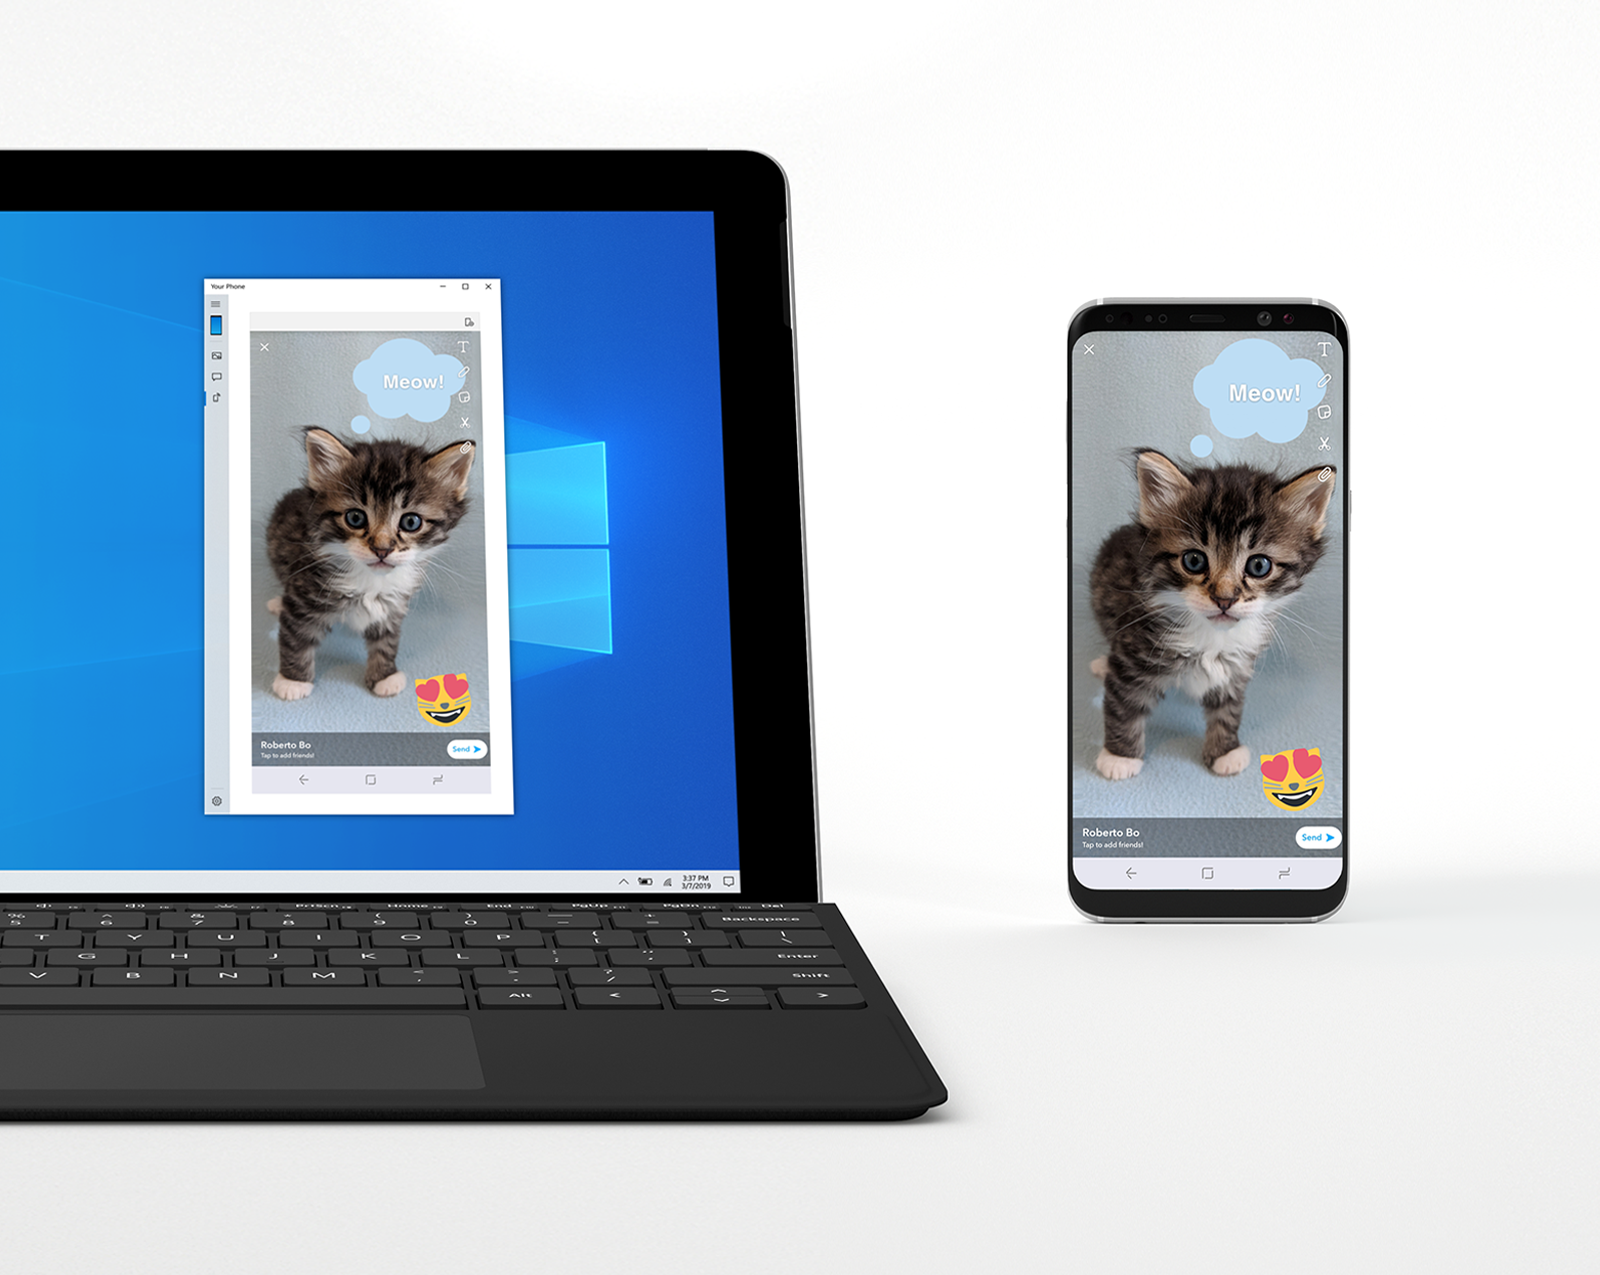 Microsoft begins testing Android mirroring in Windows 10